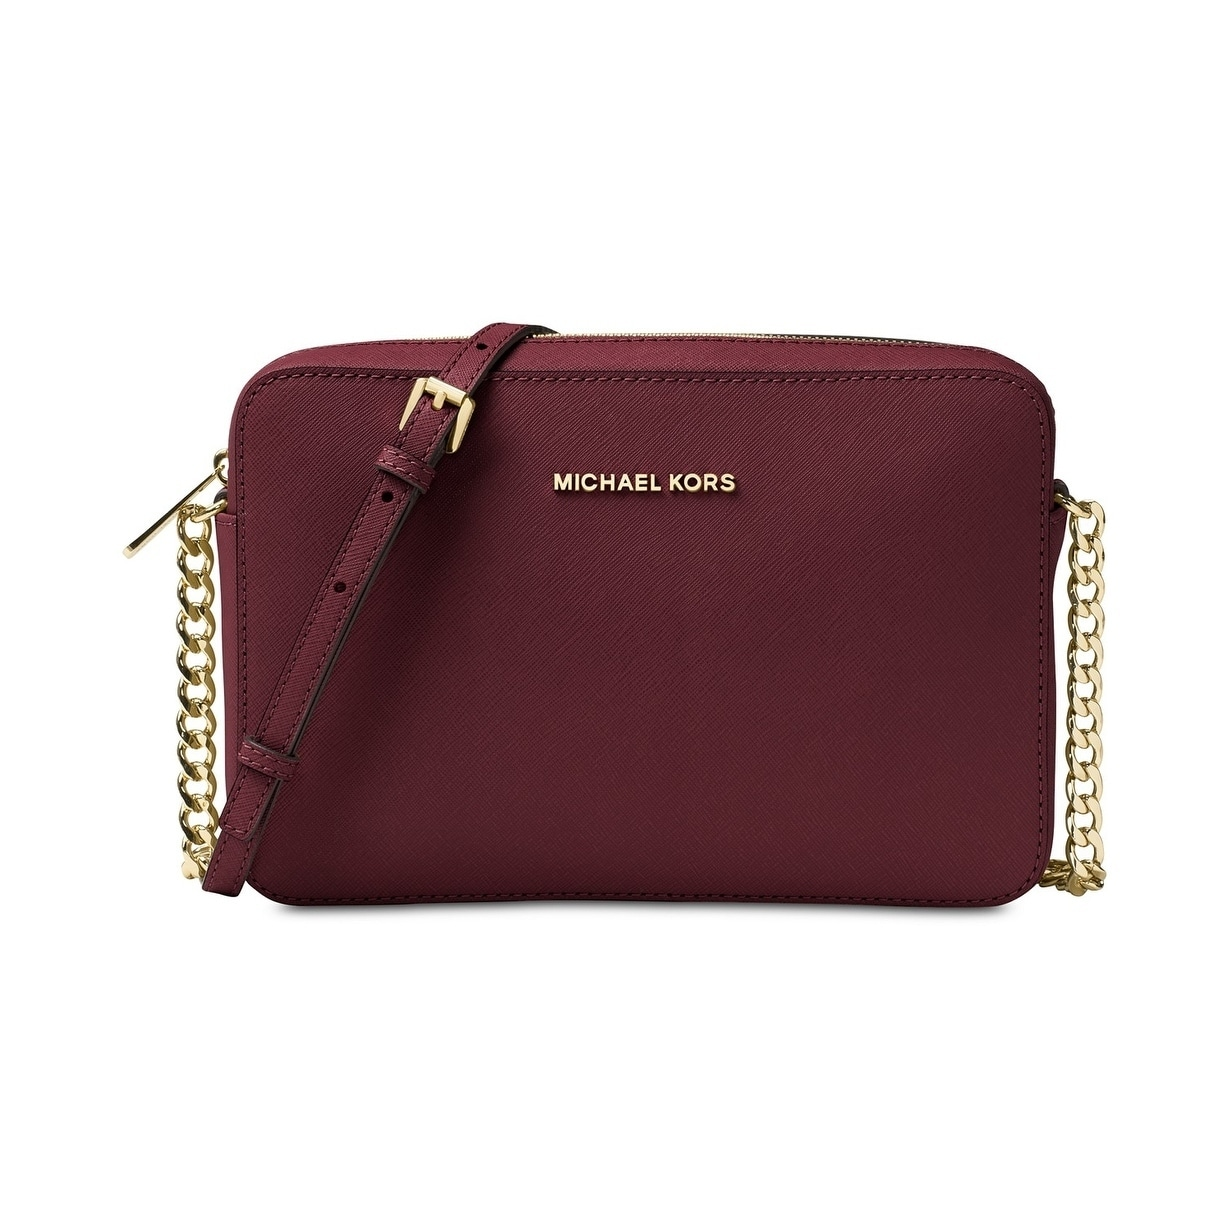 85eb0d9d16ae Shop Michael Kors Jet Set Large Saffiano Leather Crossbody Bag ...